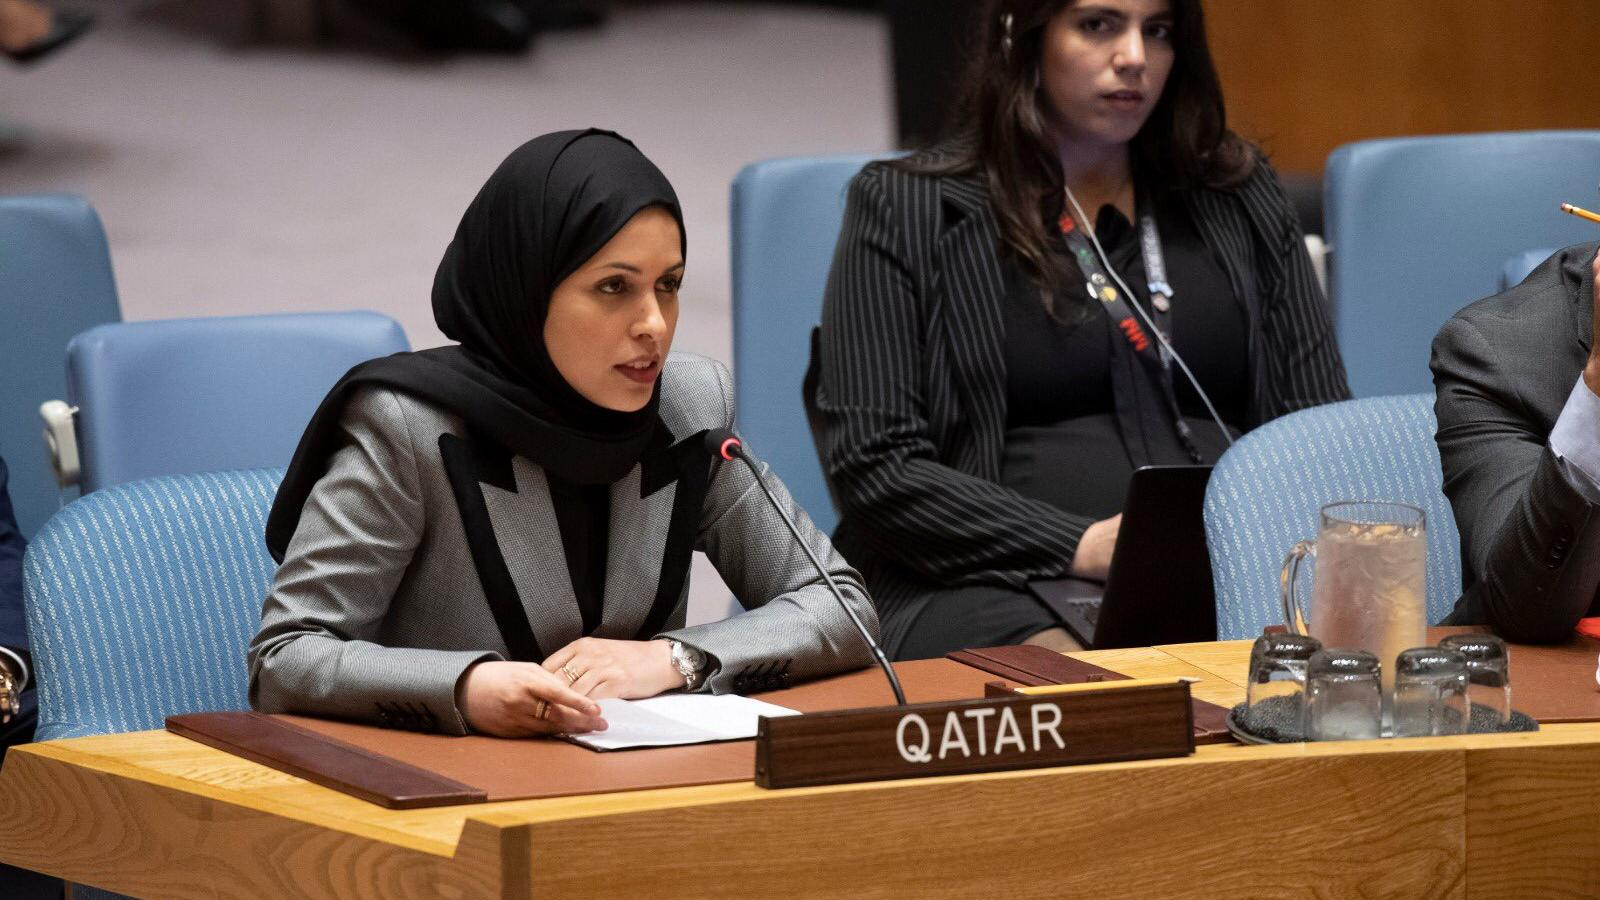 Qatar once again calls for dialogue with blockade countries to resolve crisis